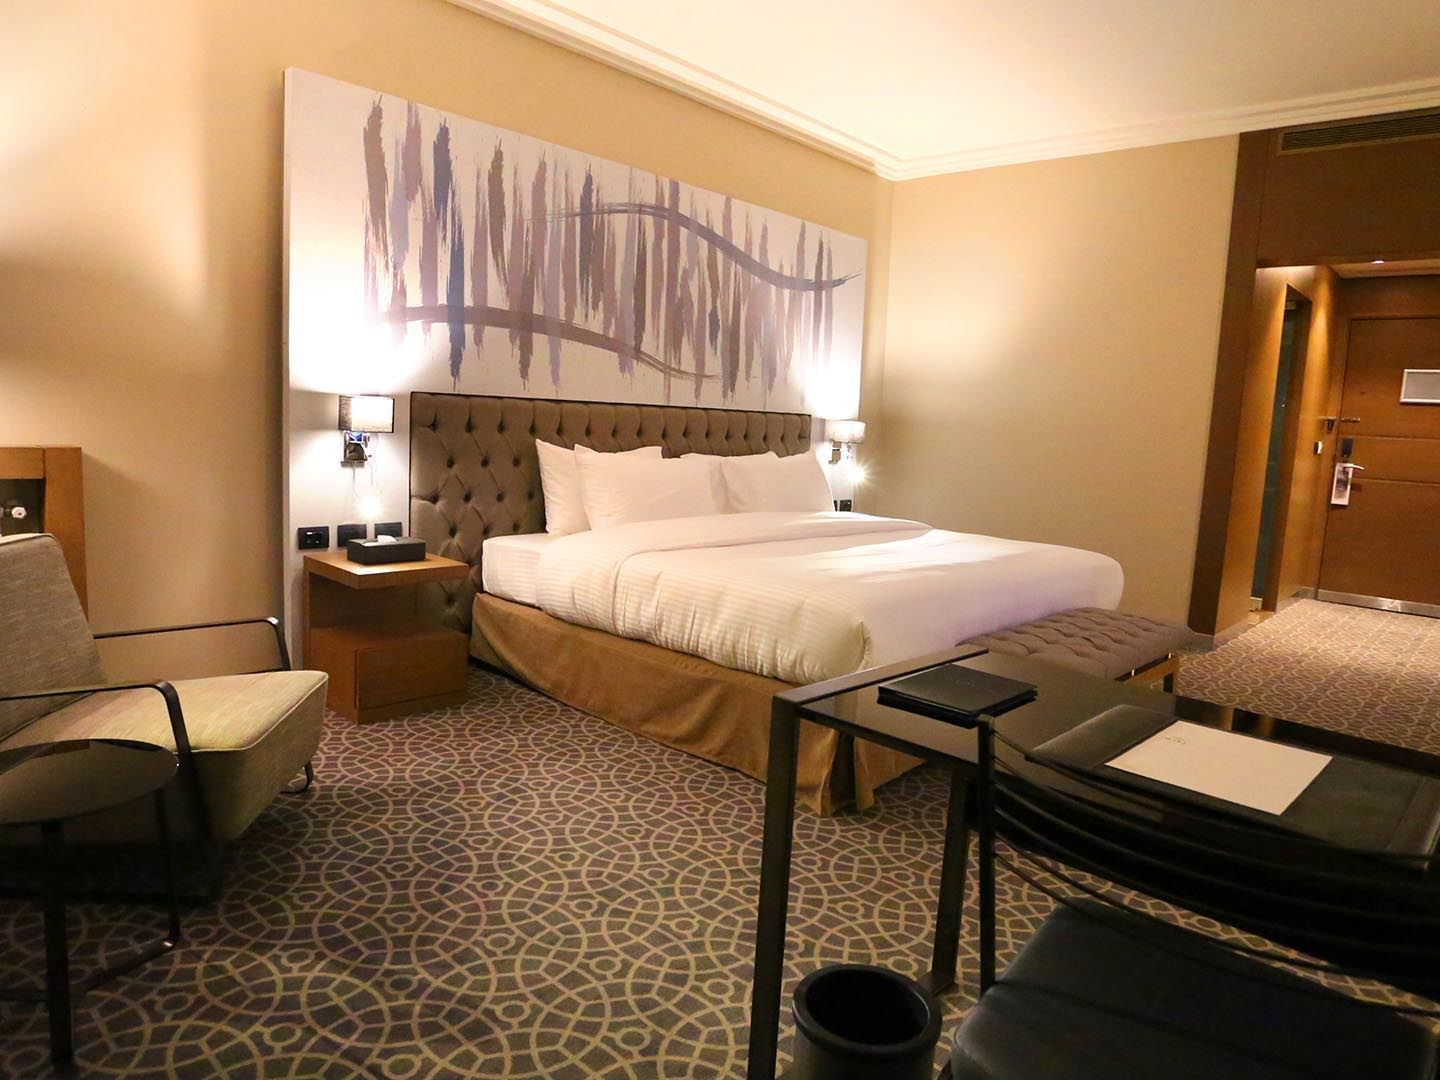 Superior Room at Mist Hotel and Spa